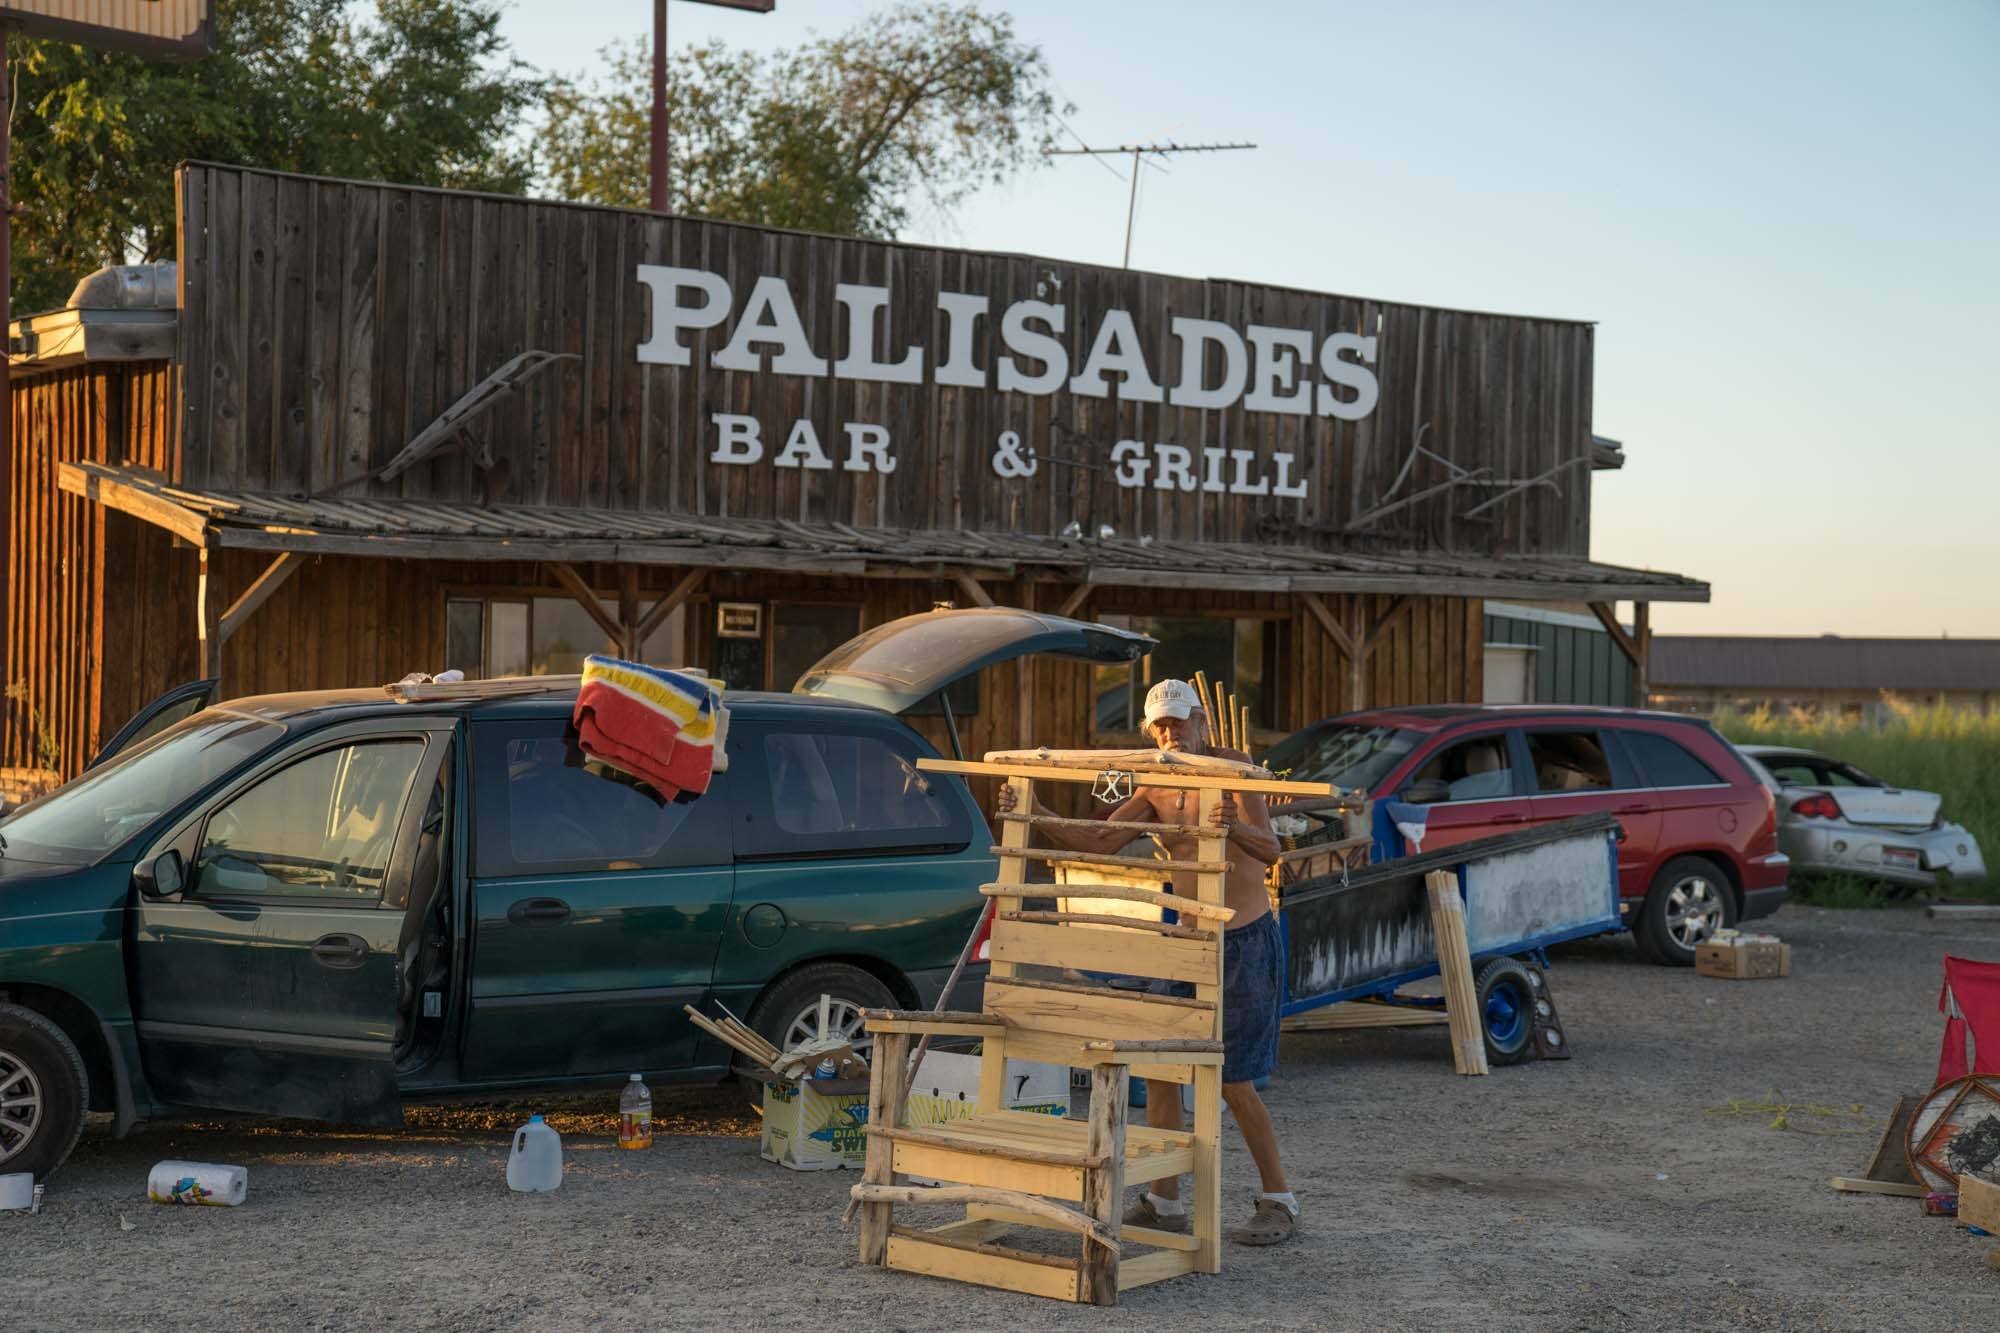 Palisades bar and grill sells peaches on a roadside of Idaho.